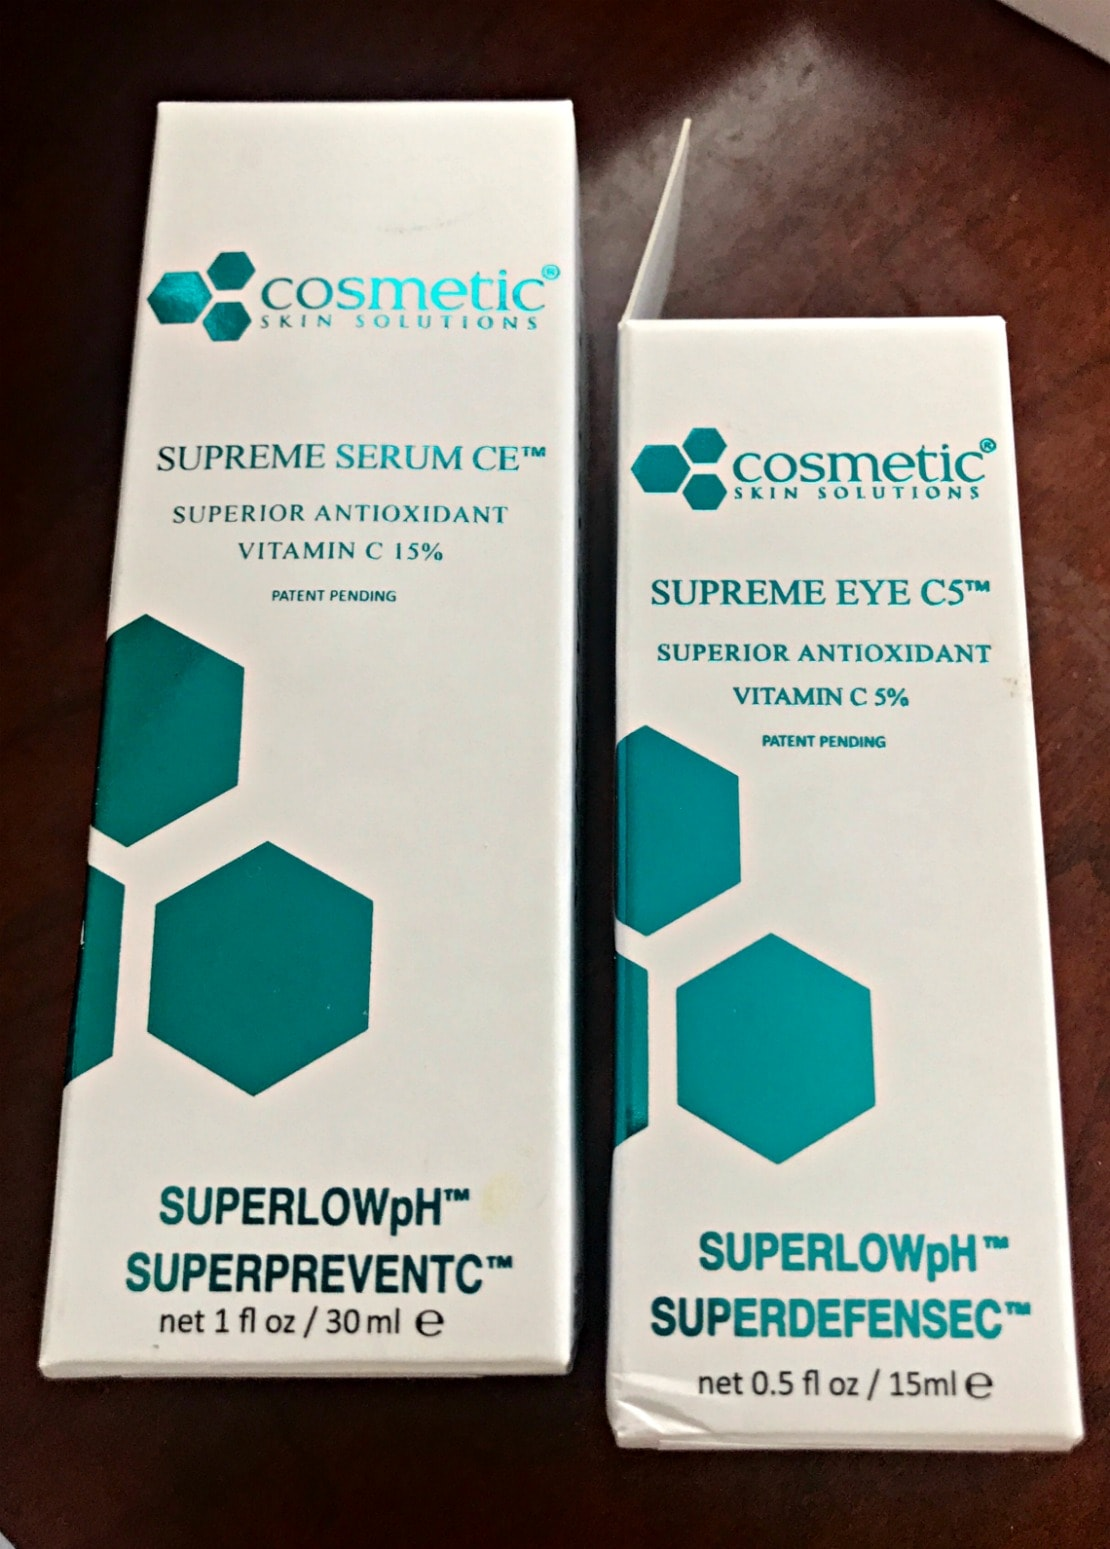 cosmetic skin solutions vitamin c serums for a fresh complexion on A Well Styled Life